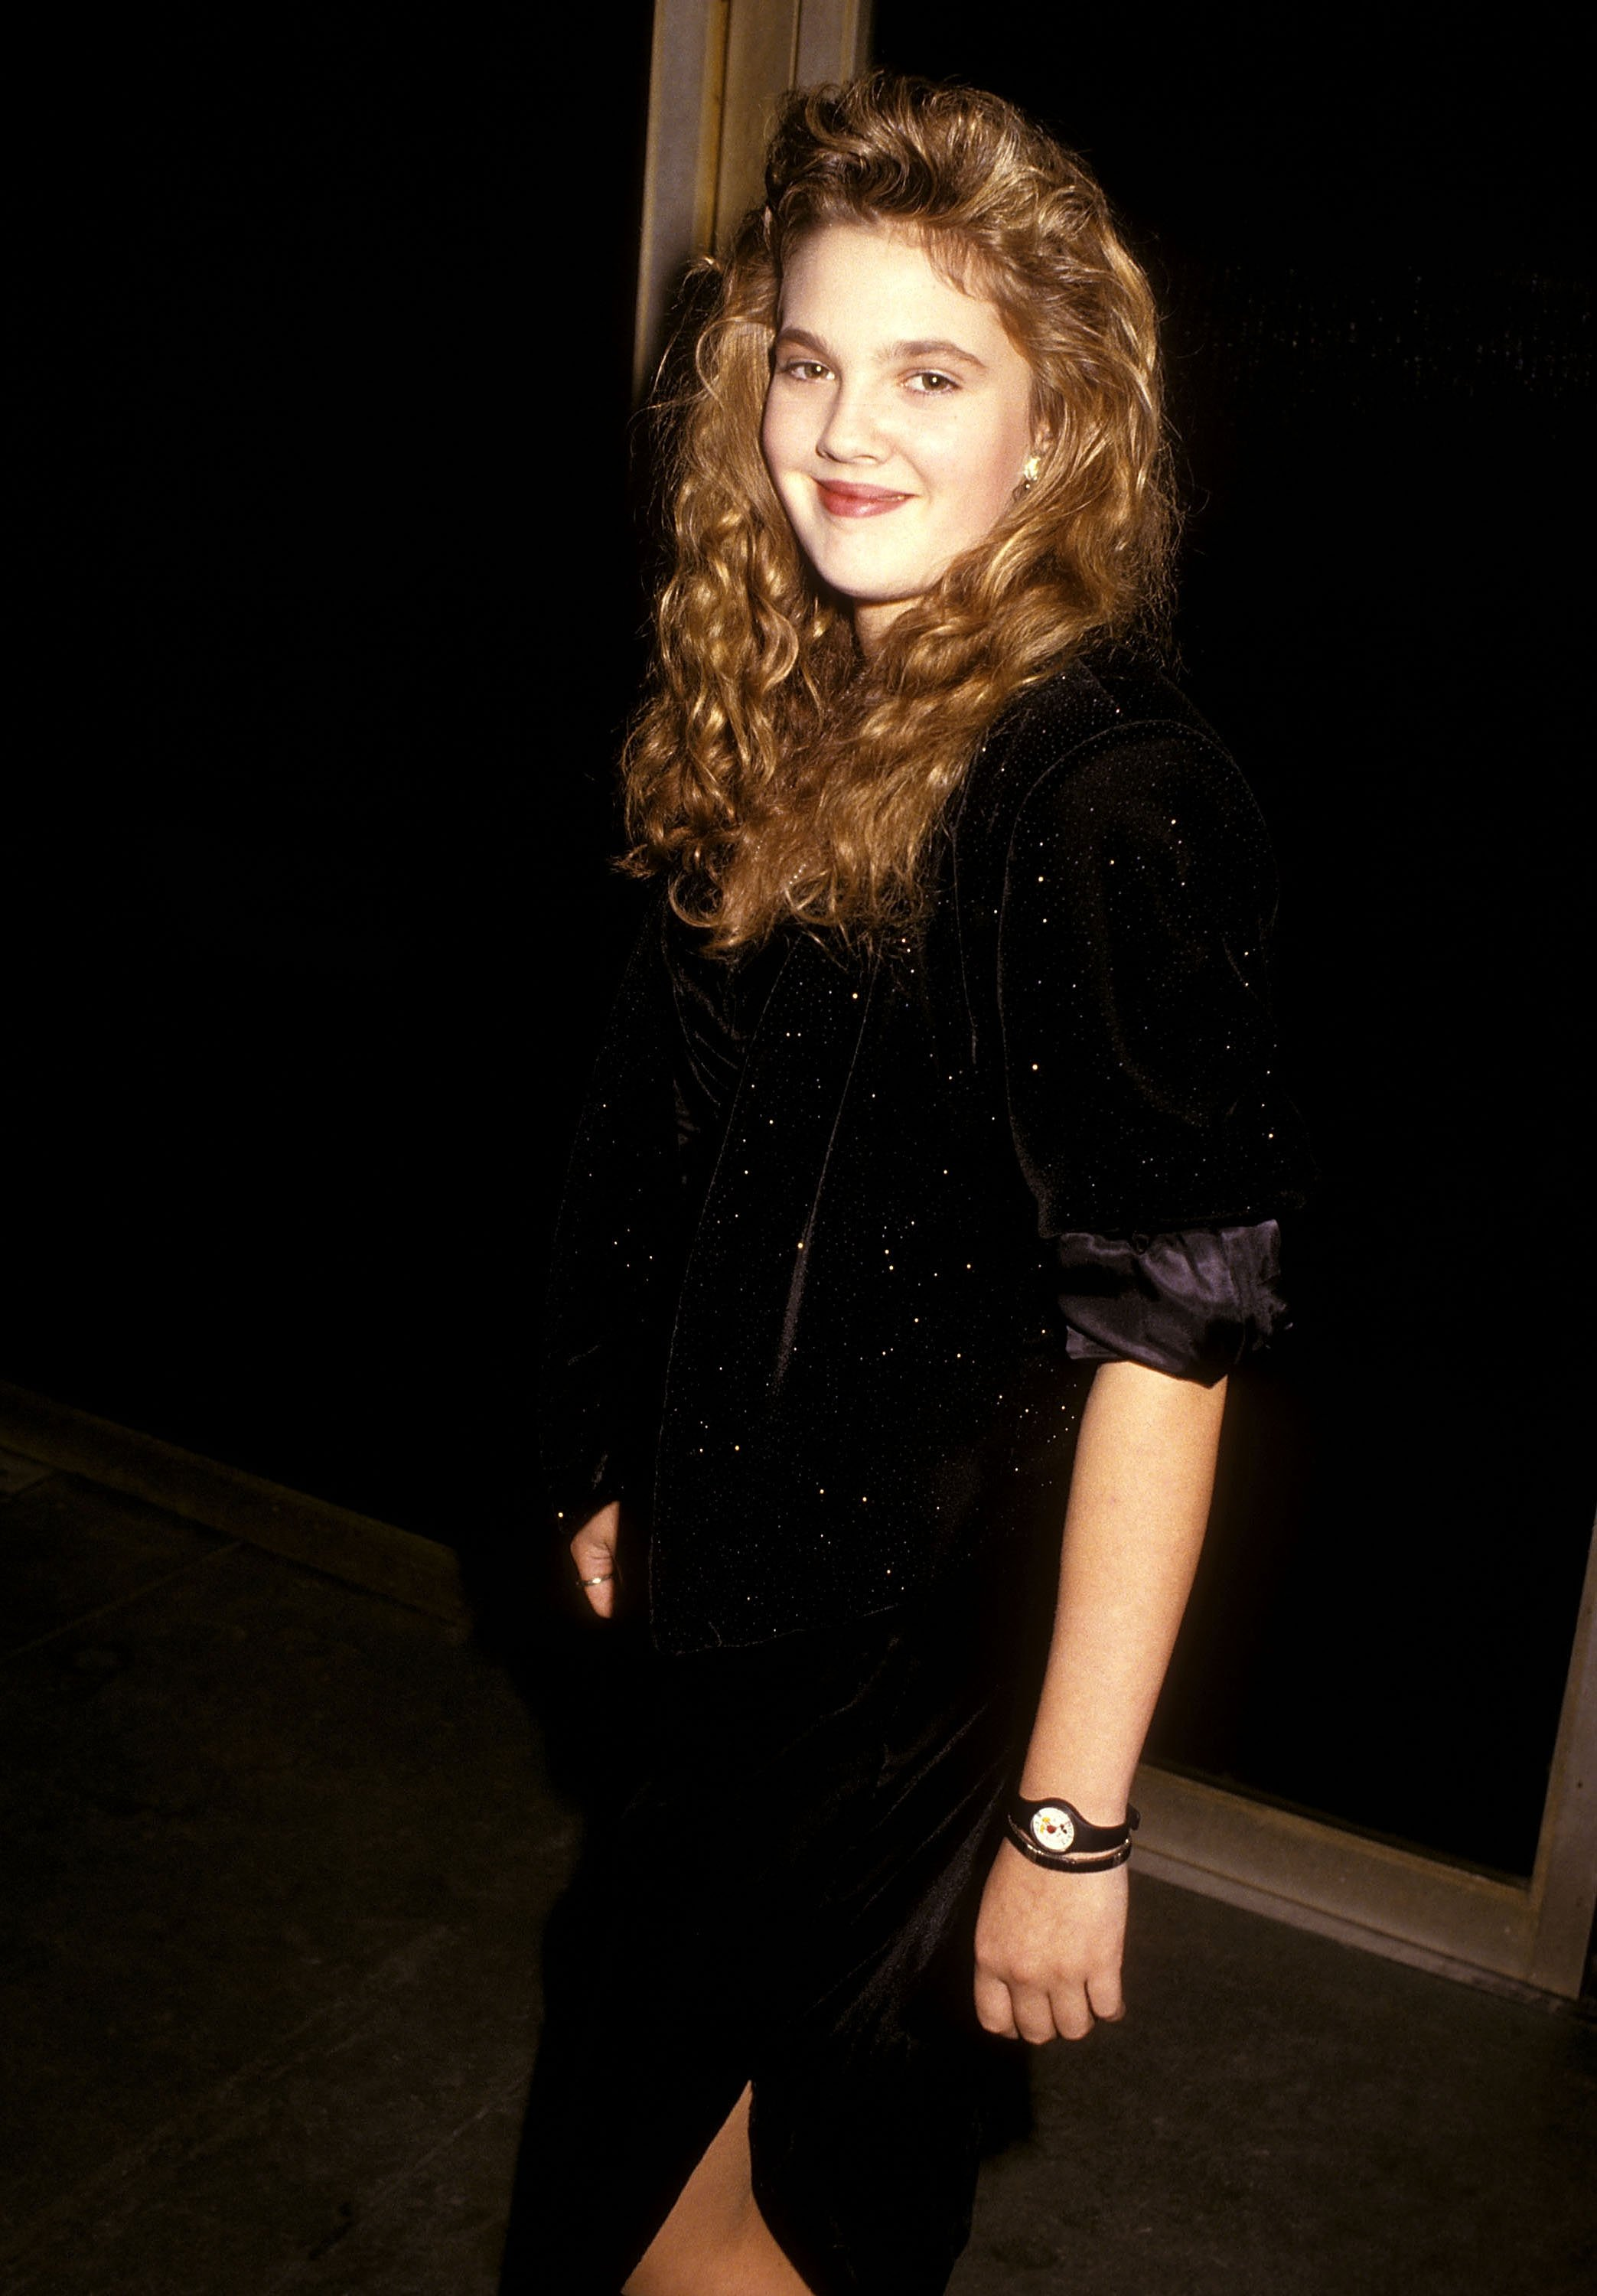 Drew Barrymore attends the Ninth Annual Youth in Film/Young Artist Awards on December 5, 1987 at Hollywood Palladium in Hollywood, California | Photo: Getty Images